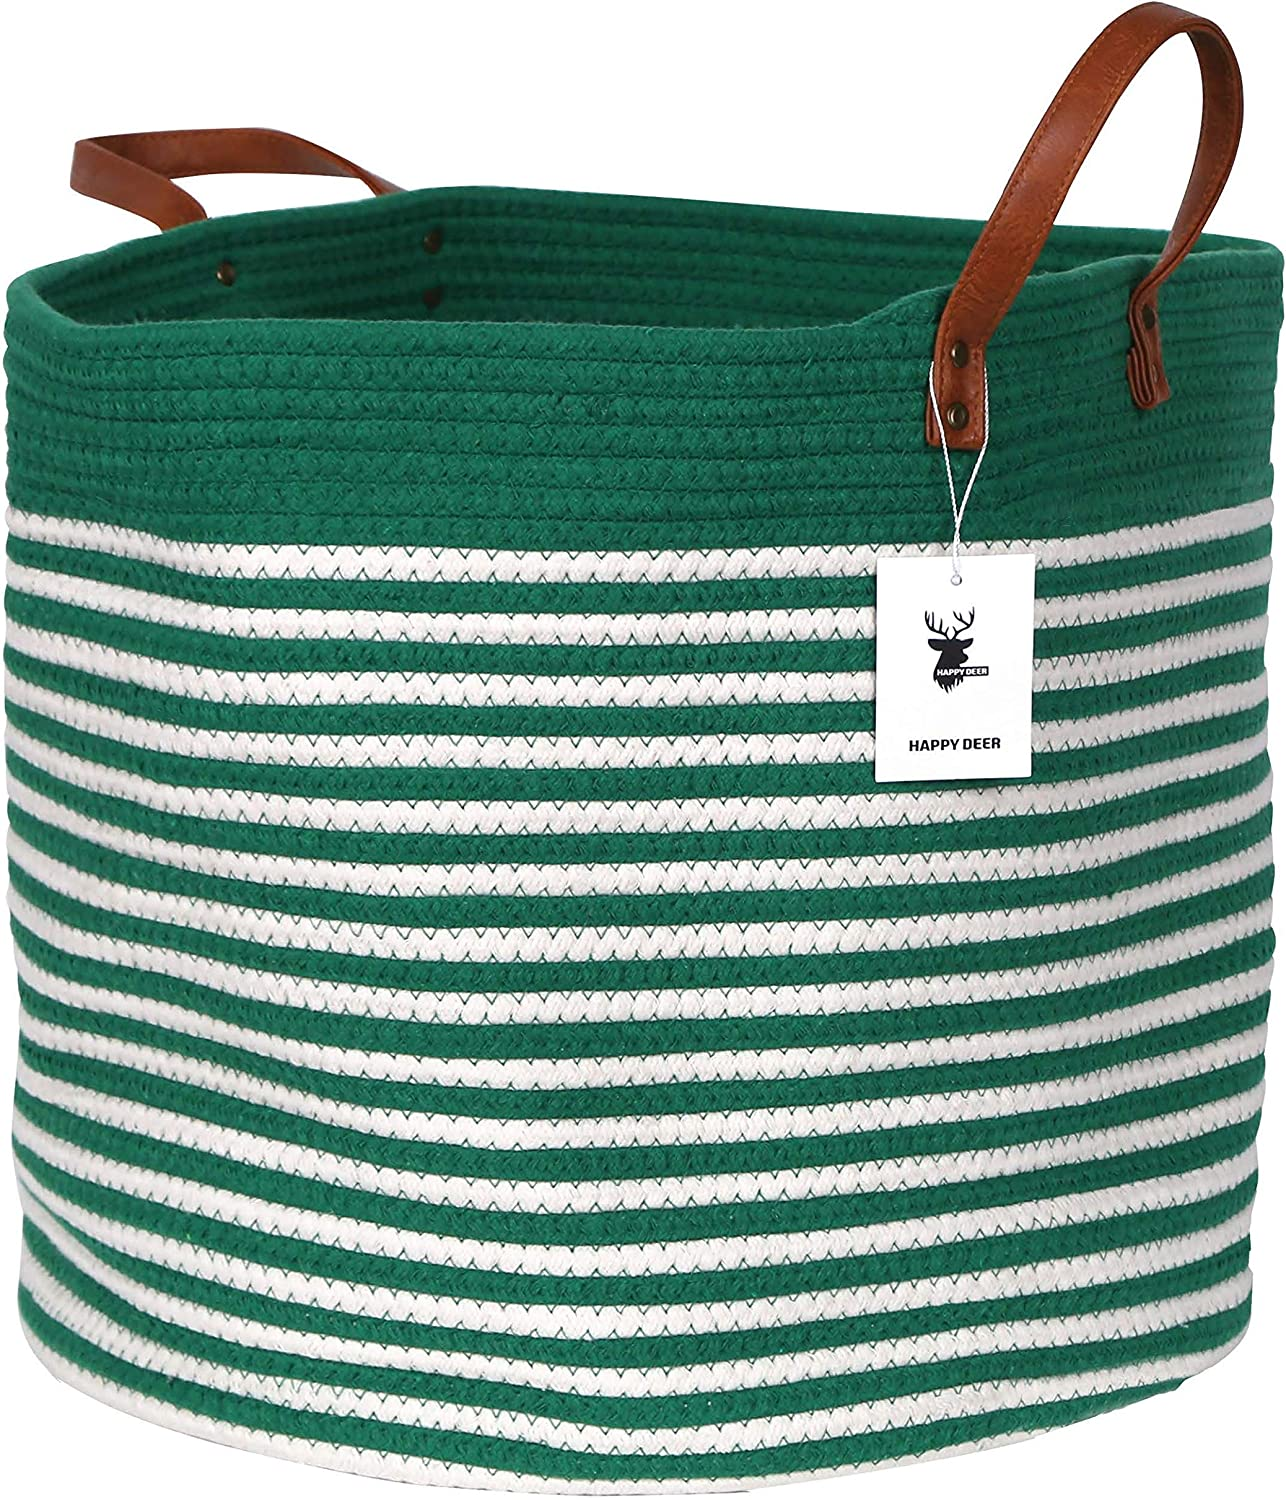 Happydeer Cotton Rope Storage Basket Large Size Green Mixed White Dia17 H15, PU Leather Handle, Blanket Storage Basket, Washing Basket, Toy Storage, Nursery Hamper